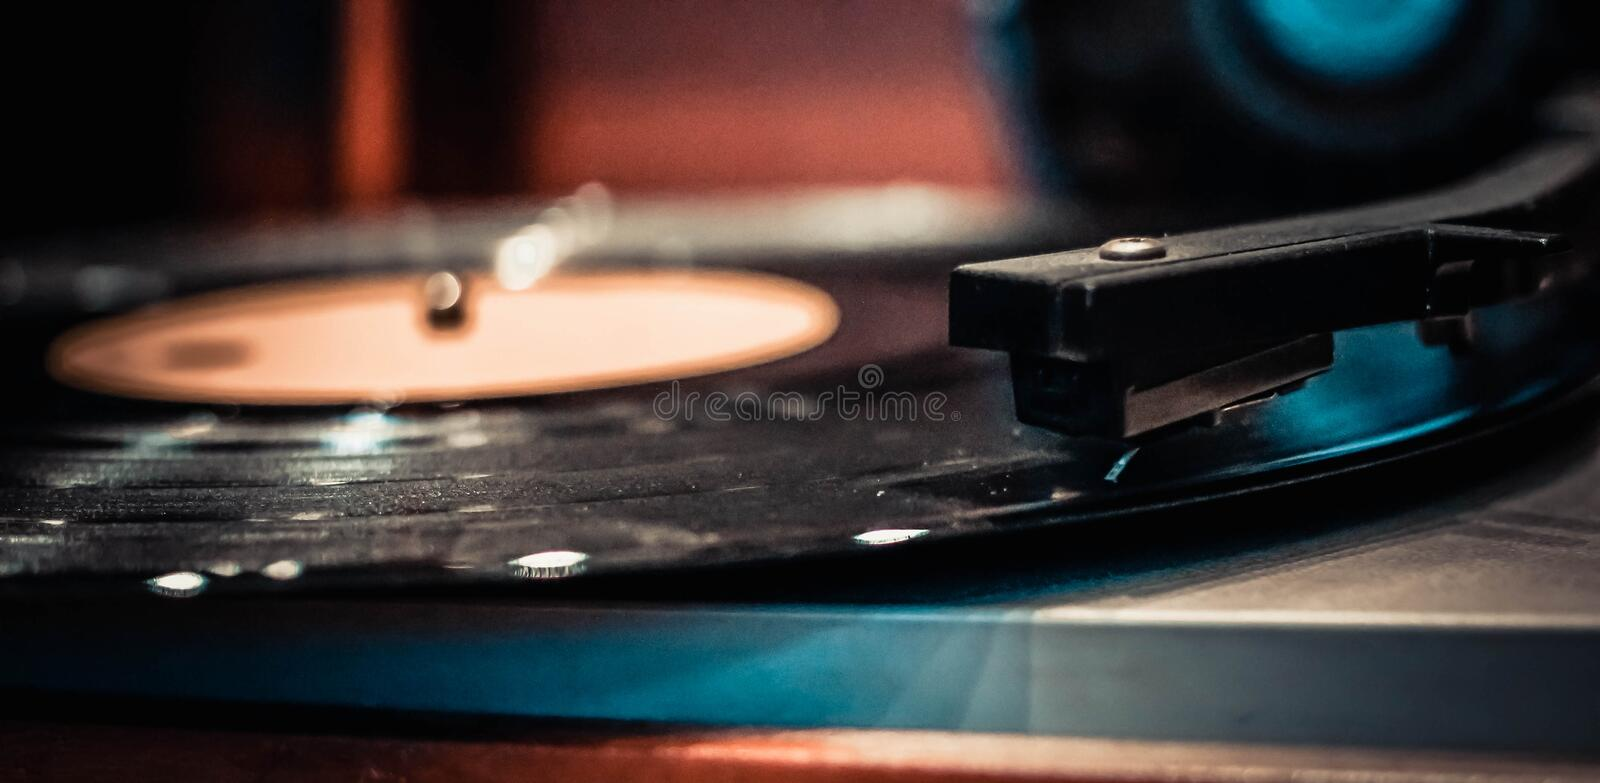 Vinyl. Music addict and vinyl lover royalty free stock photography